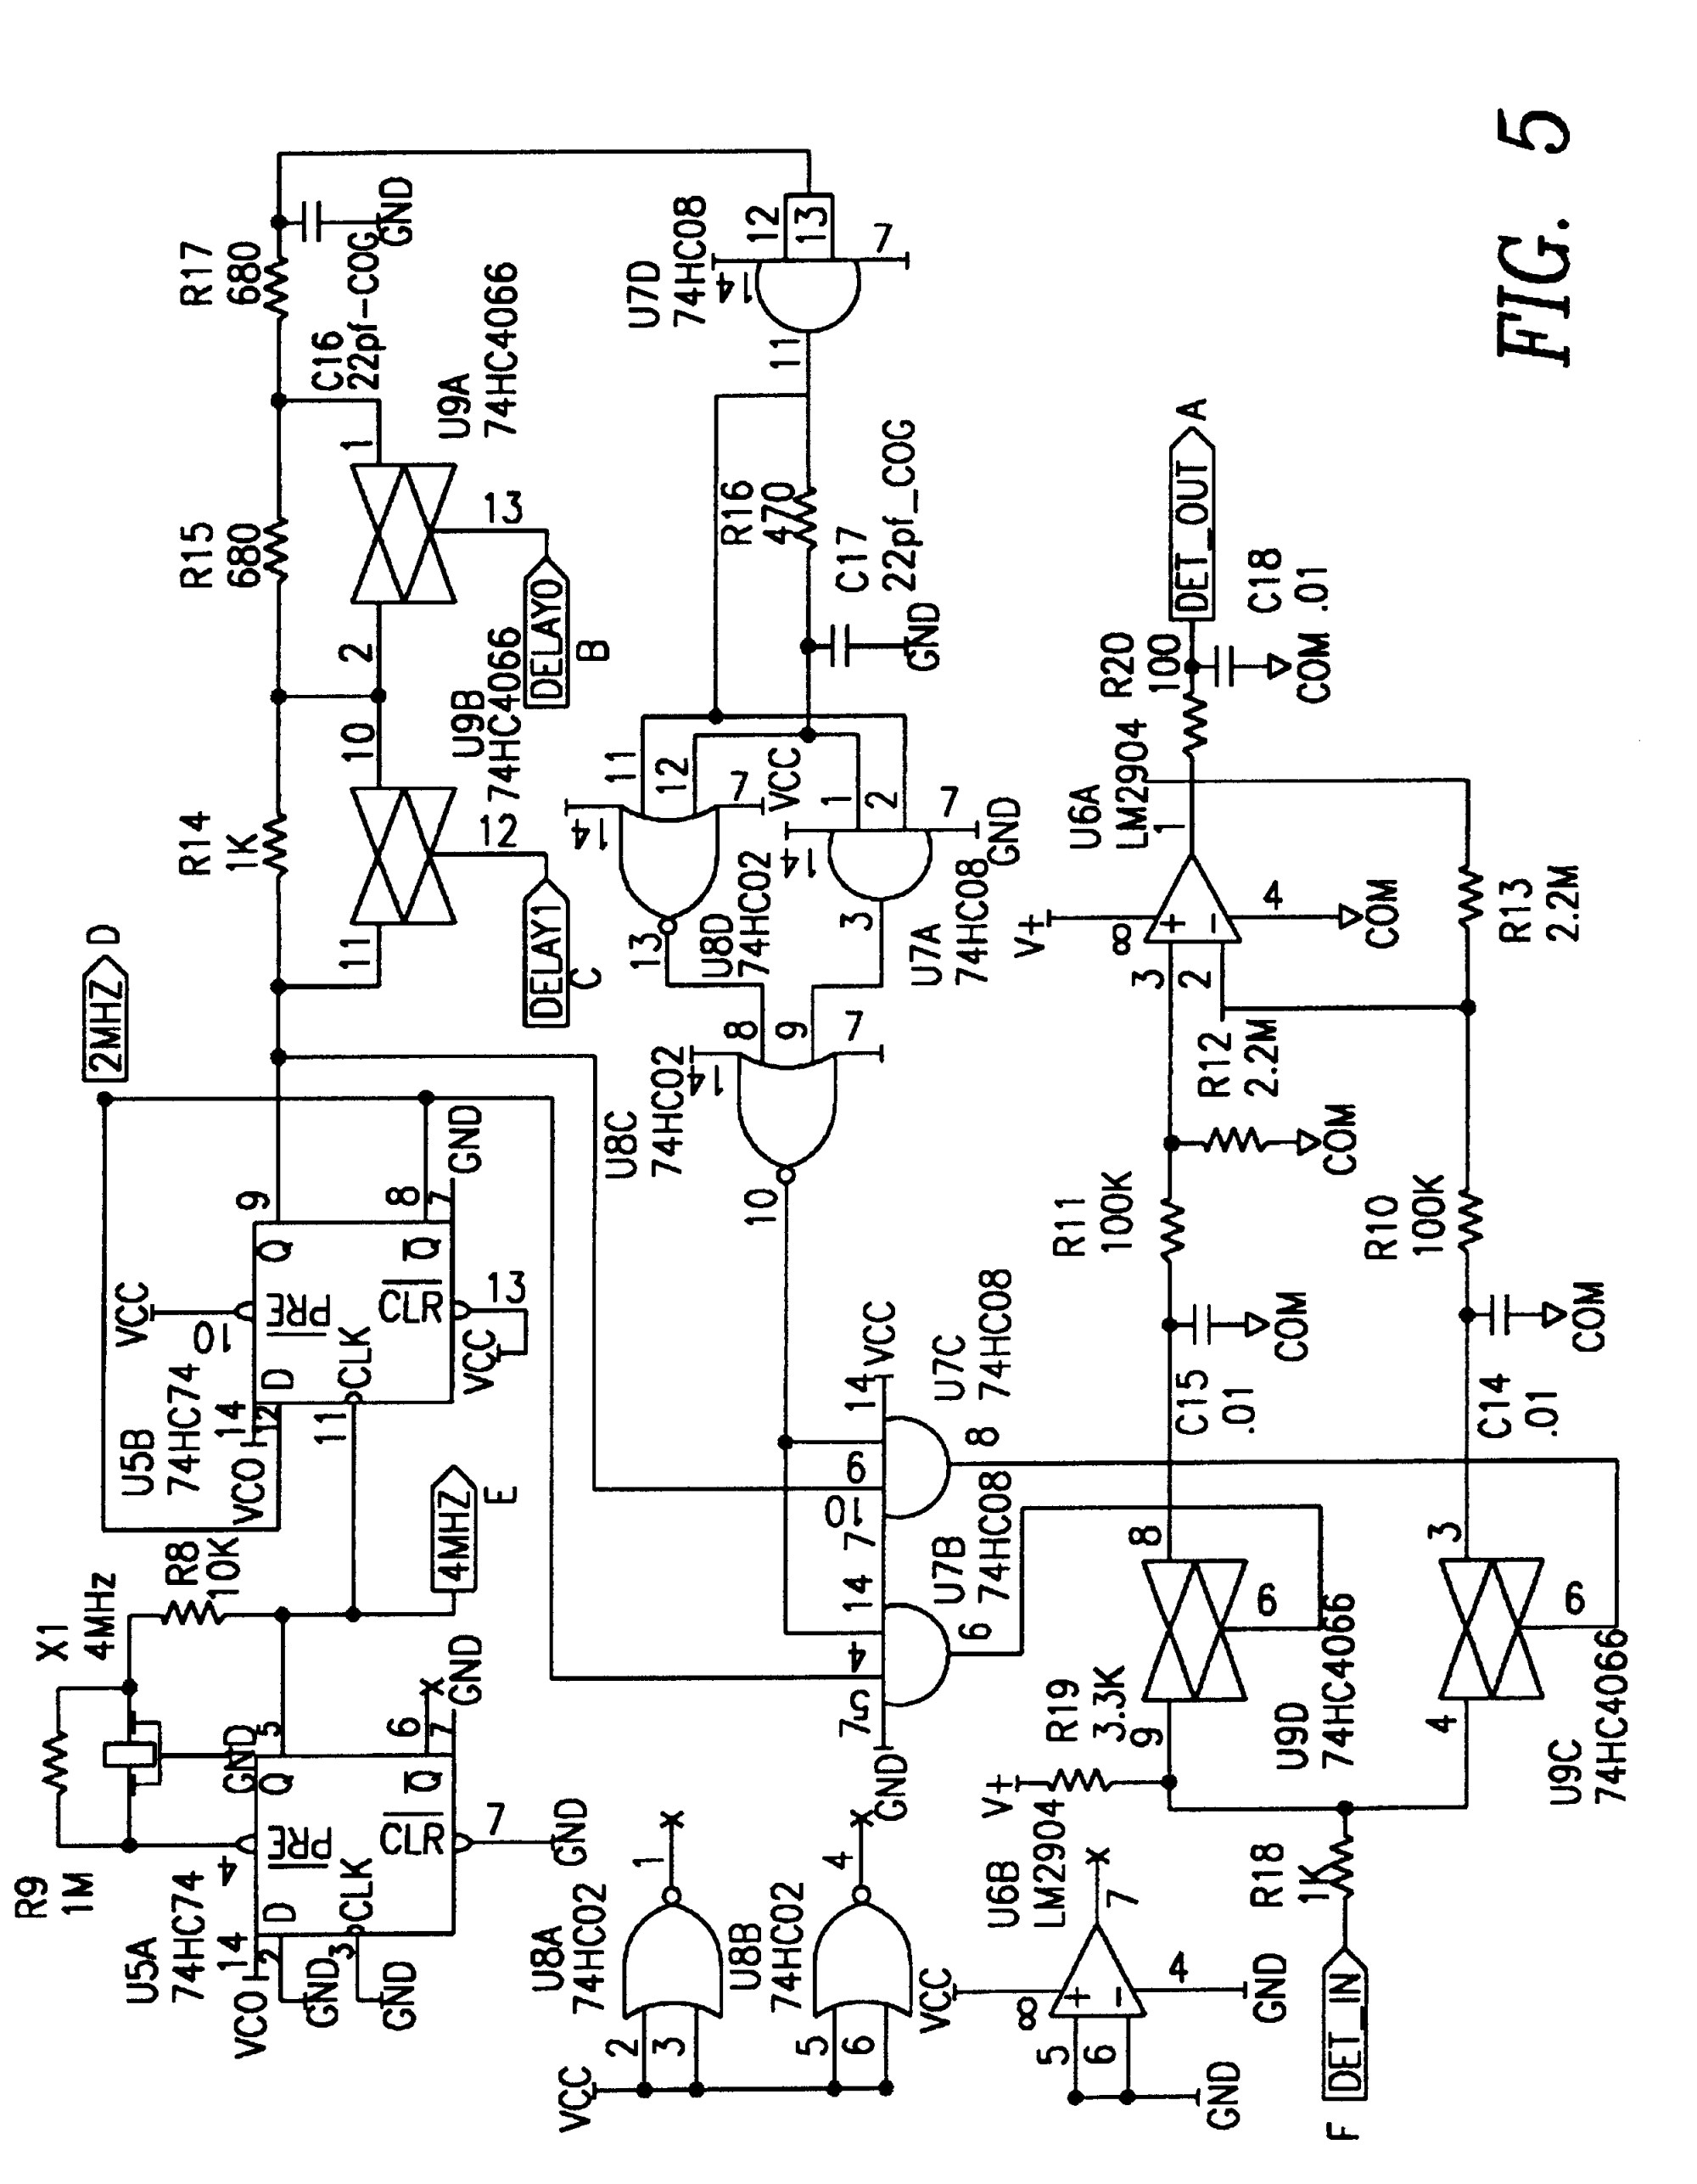 hight resolution of wiring traulsen diagrams t34904c10 wiring diagramwiring traulsen diagrams t34904c10 schematic diagramwiring traulsen diagrams t34904c10 wiring diagram